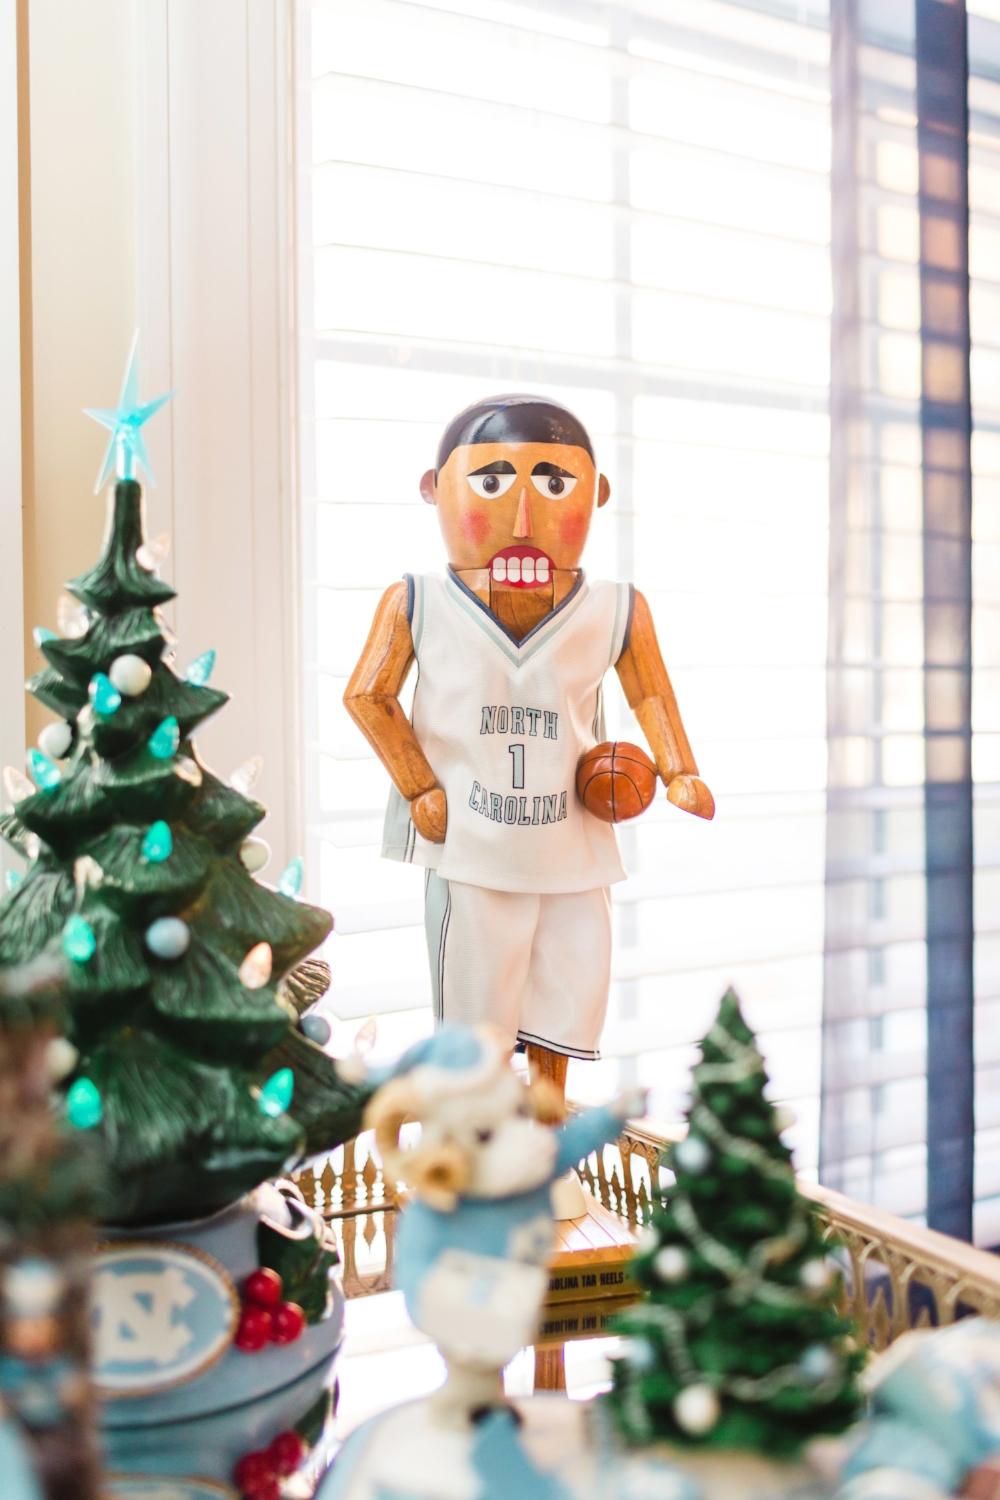 My Uncle Jim gave me this Nutcracker many years ago. It was 1 of 500 made, and when I met my best friend Sarah, she had the matching football player! We displayed them together when we were college roomies!